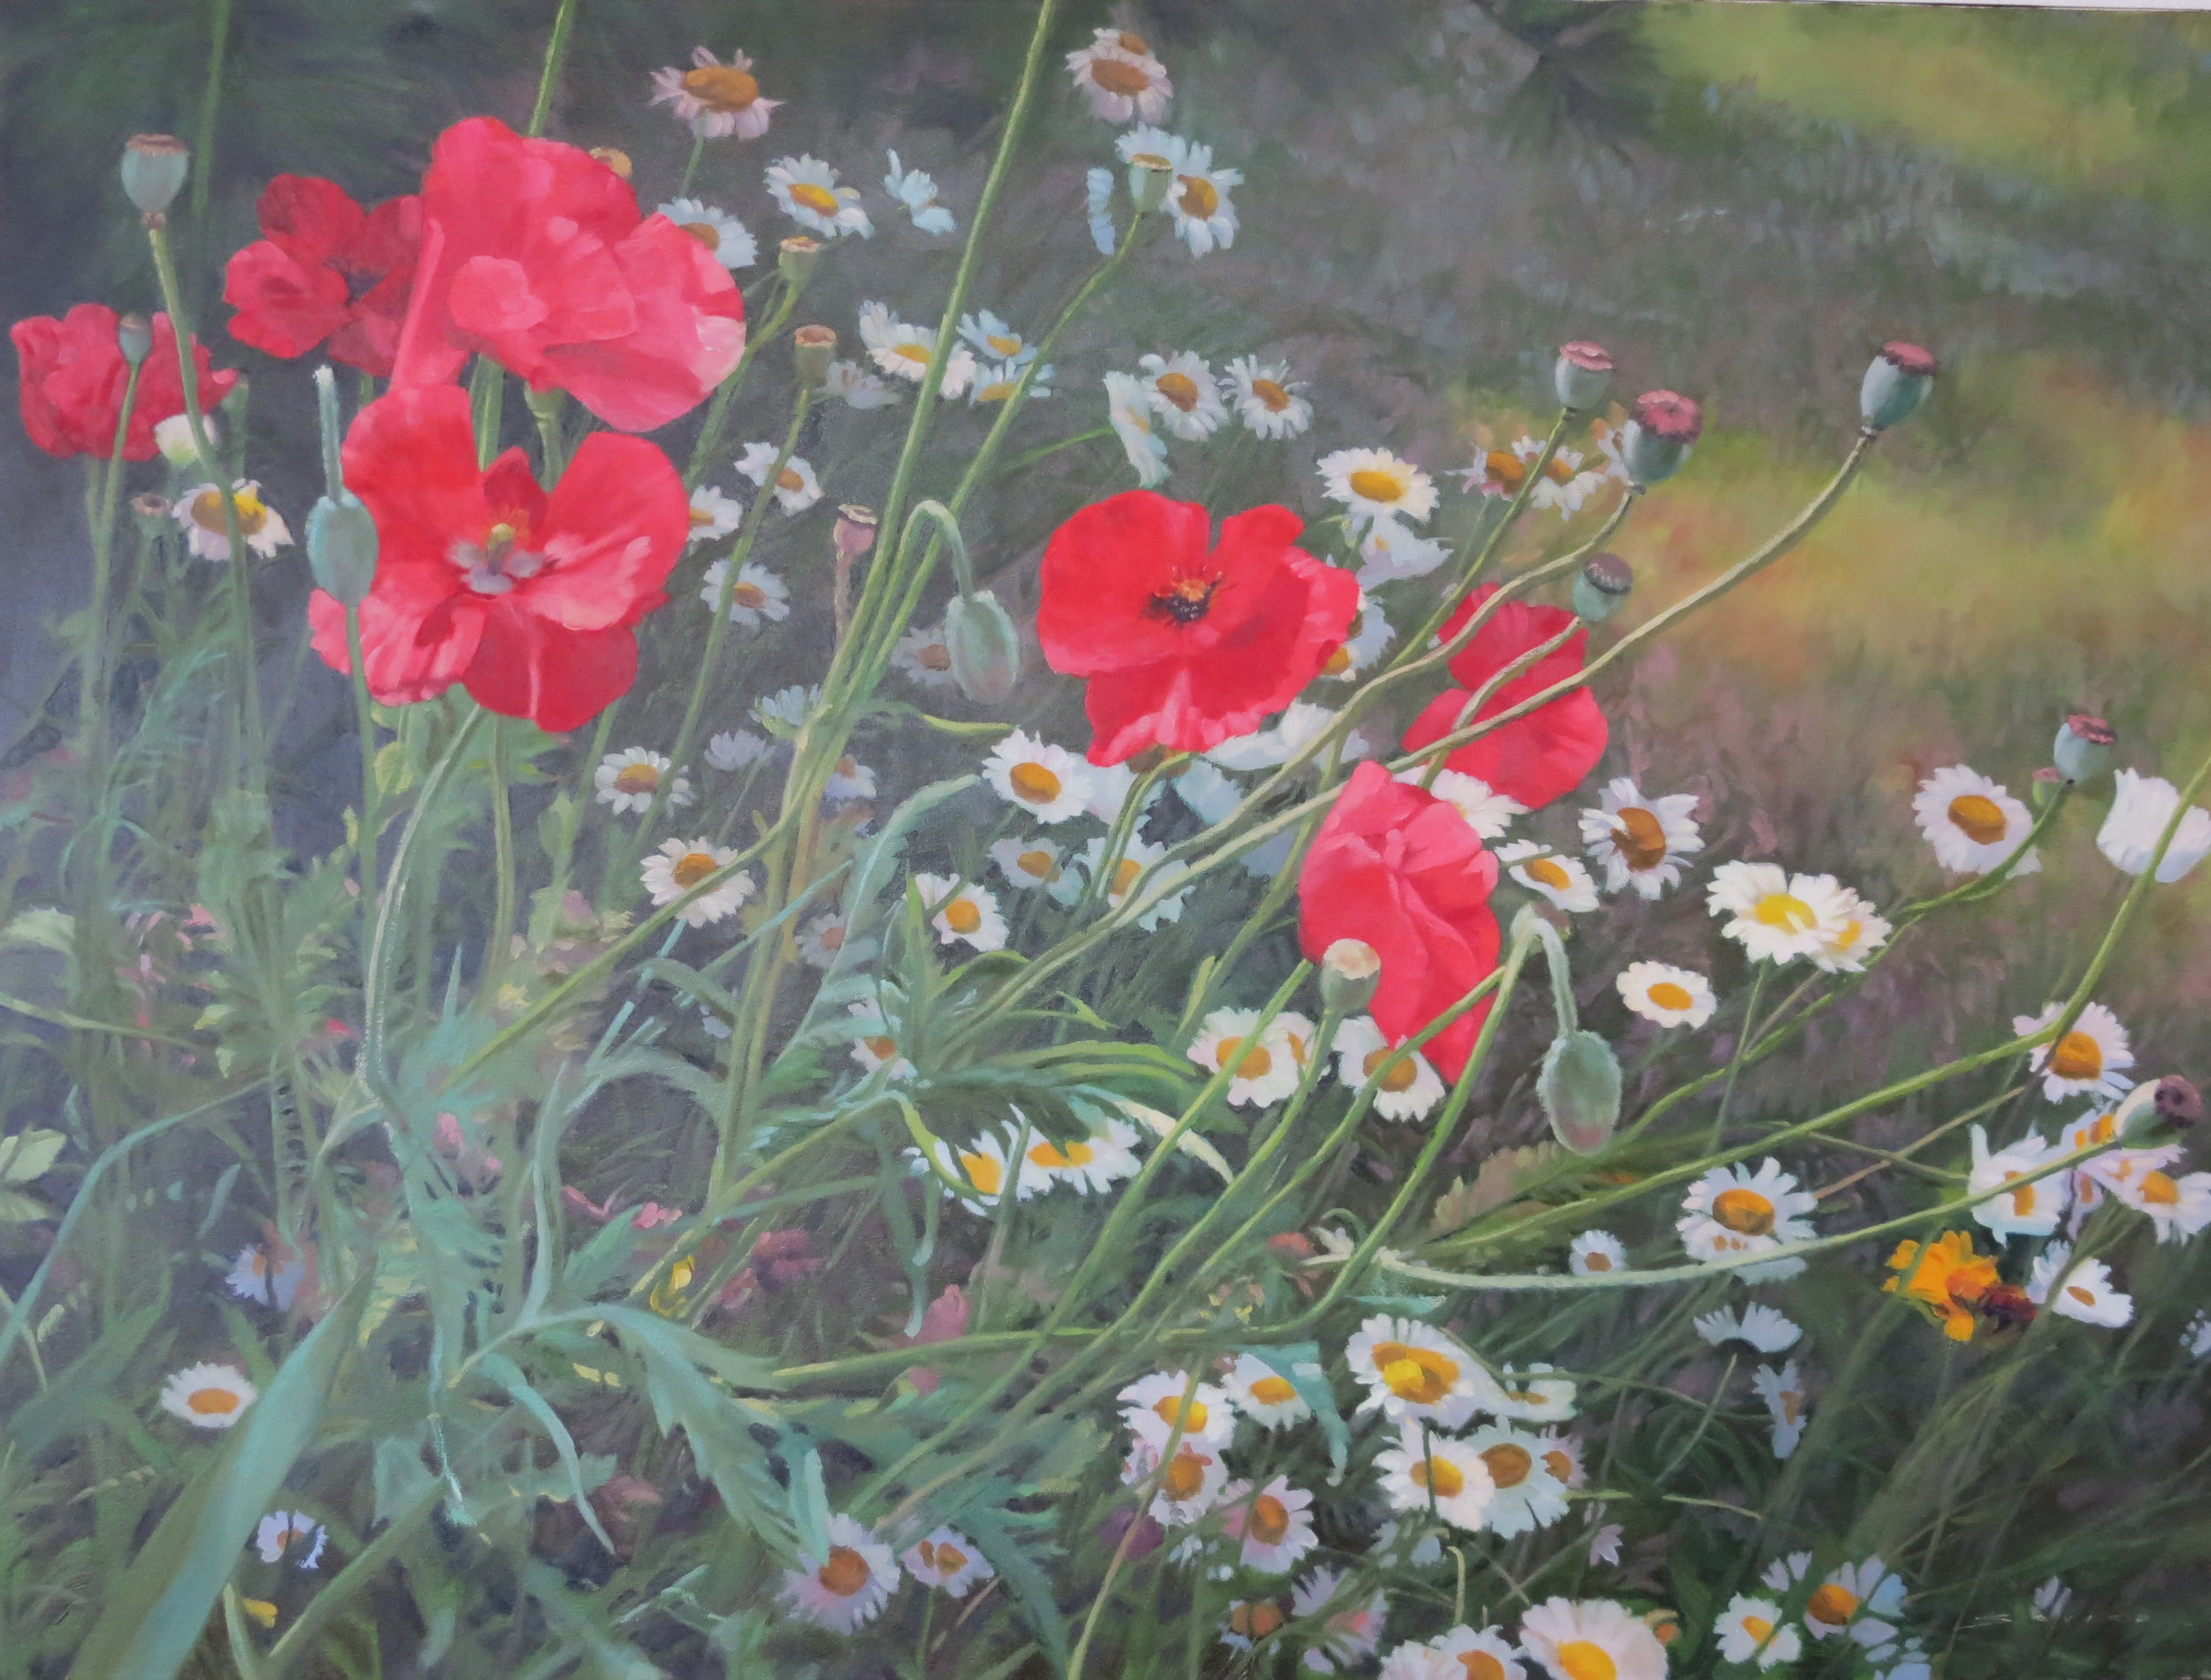 Wild Daisies/Red Poppies,  30 x 40, oil